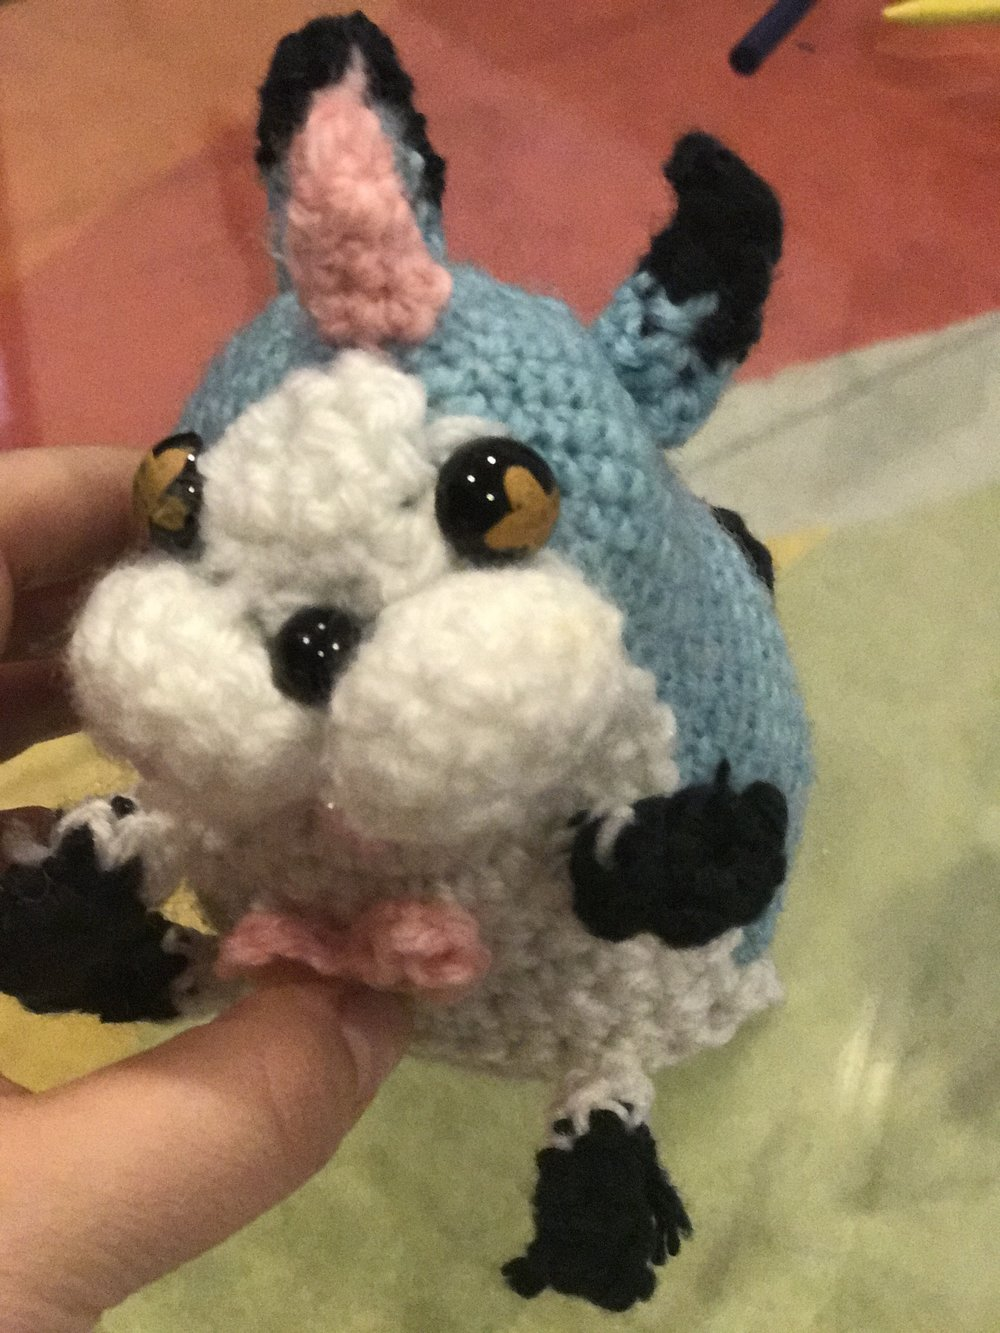 wonder nyan amigurumi crochet- made this from scratch